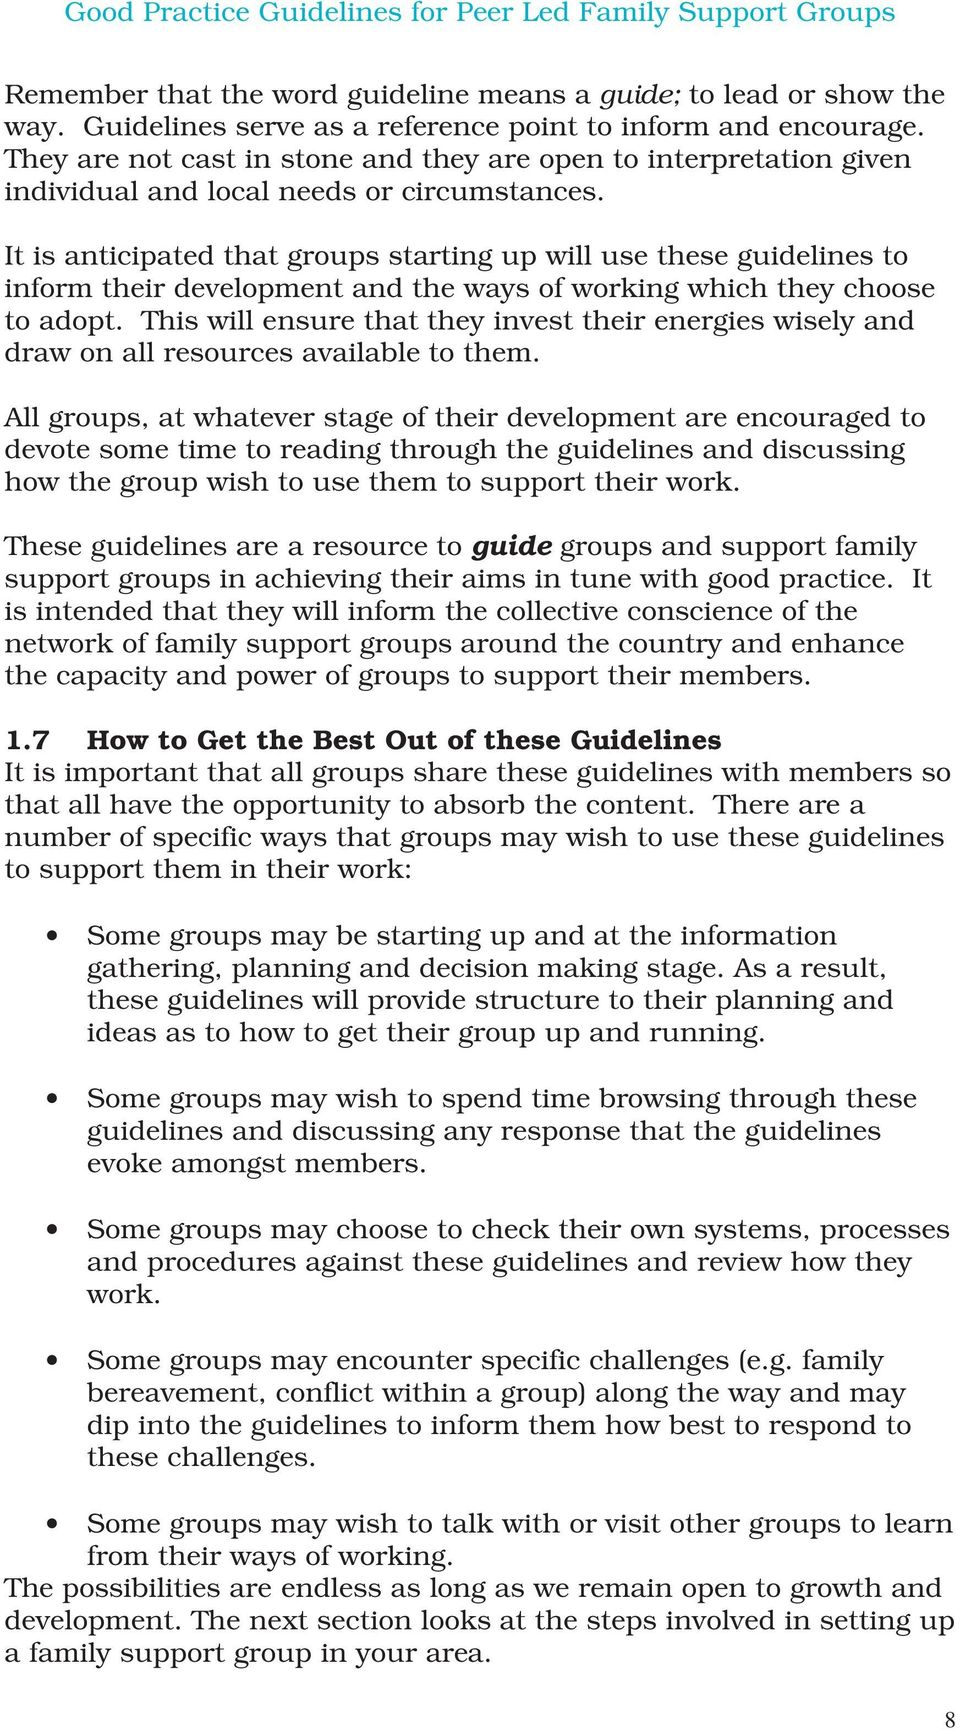 It is anticipated that groups starting up will use these guidelines to inform their development and the ways of working which they choose to adopt.